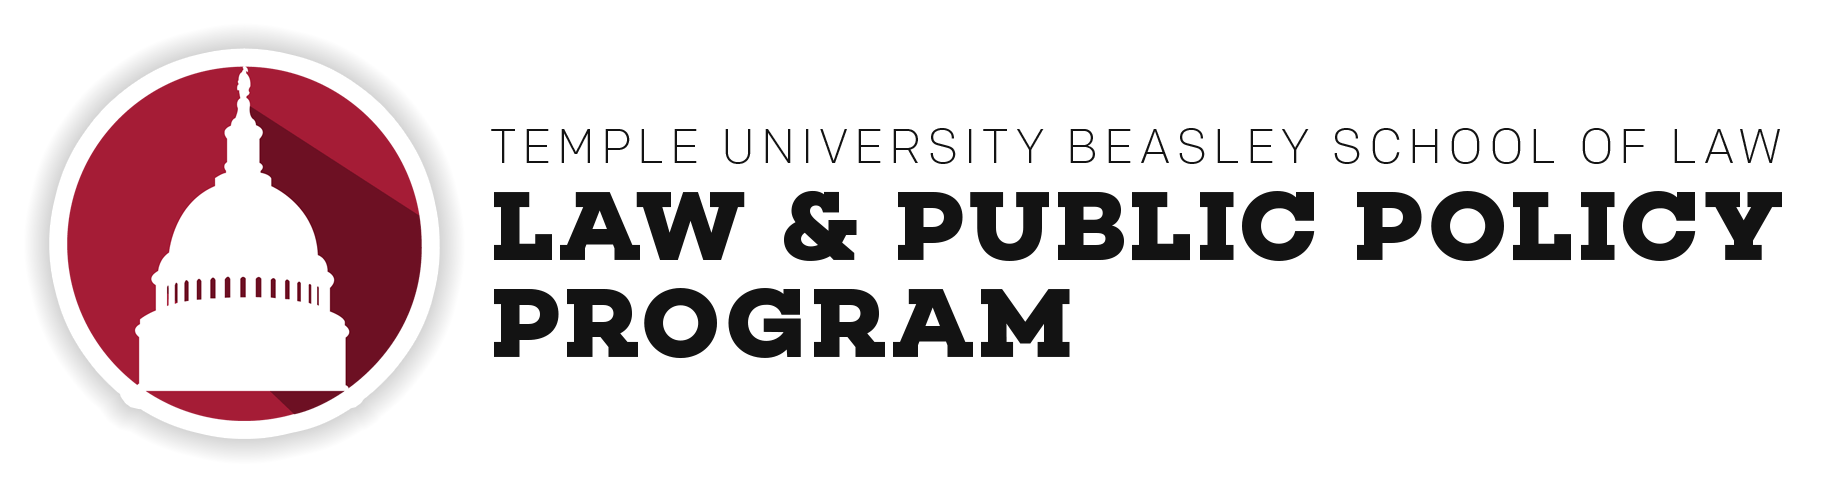 Law & Public Policy Program